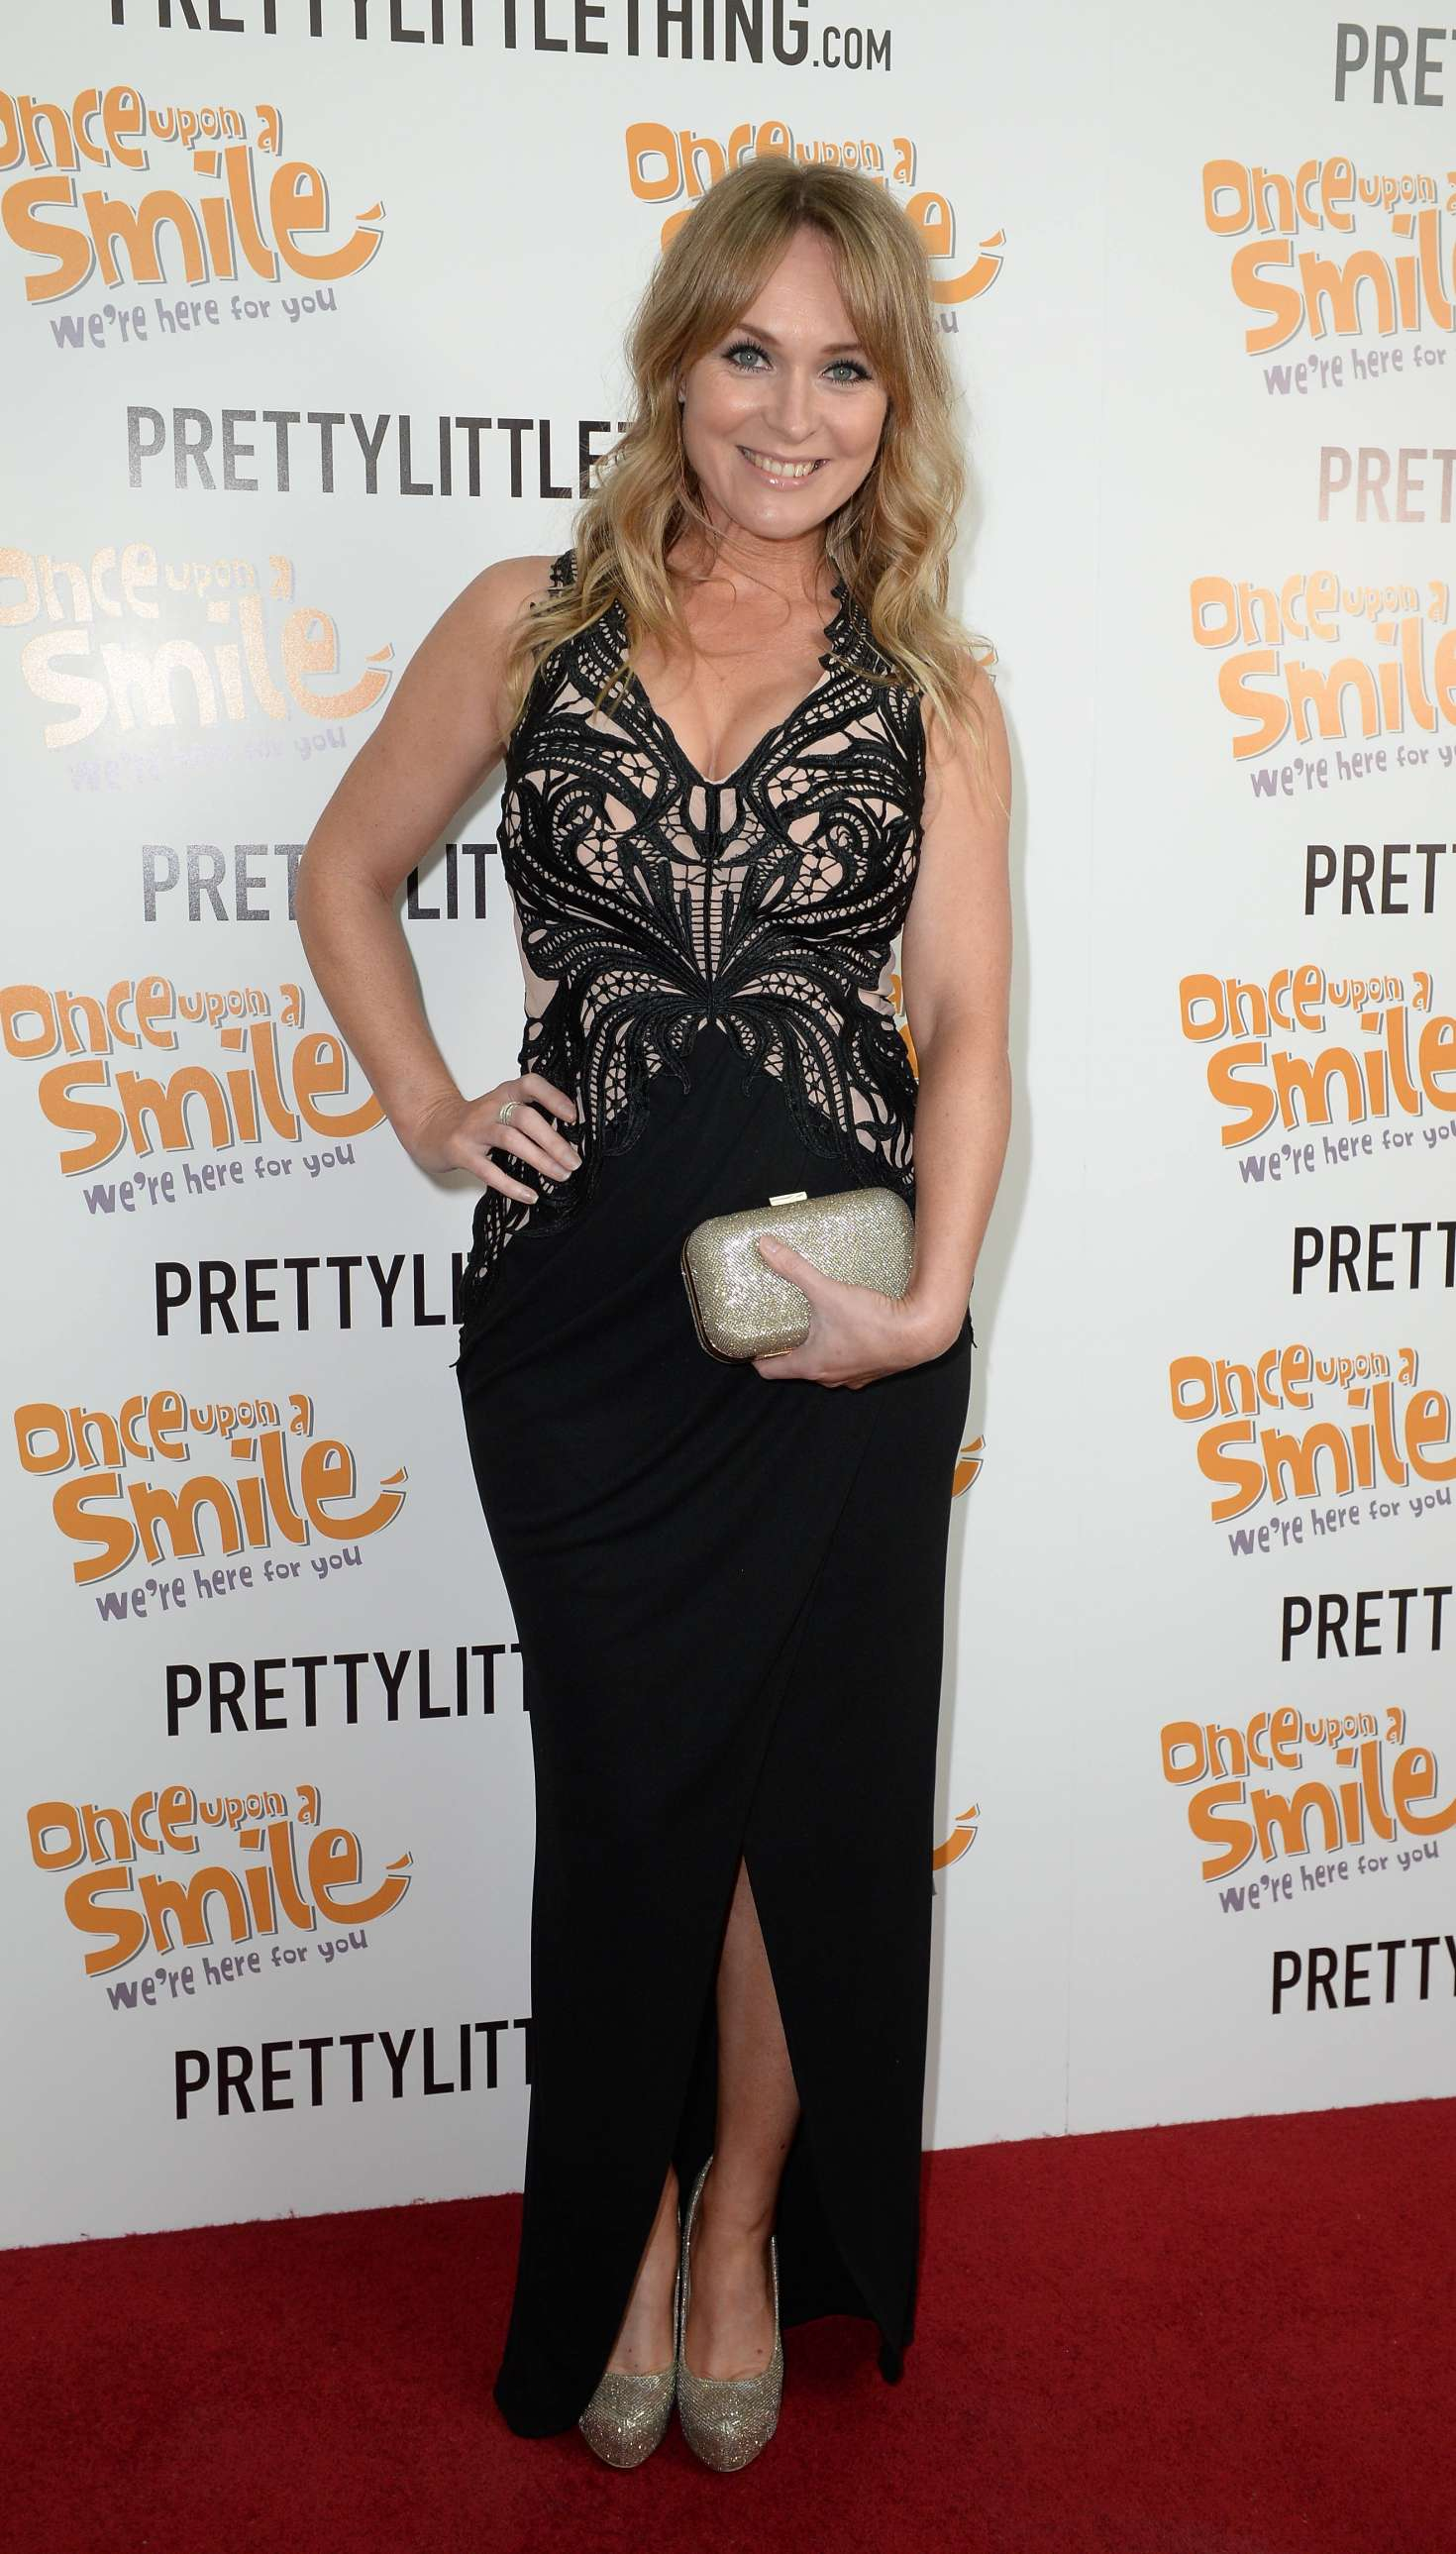 Michelle Hardwick 2017 : Michelle Hardwick: Once Upon A Smile Grand Ball 2017 -01